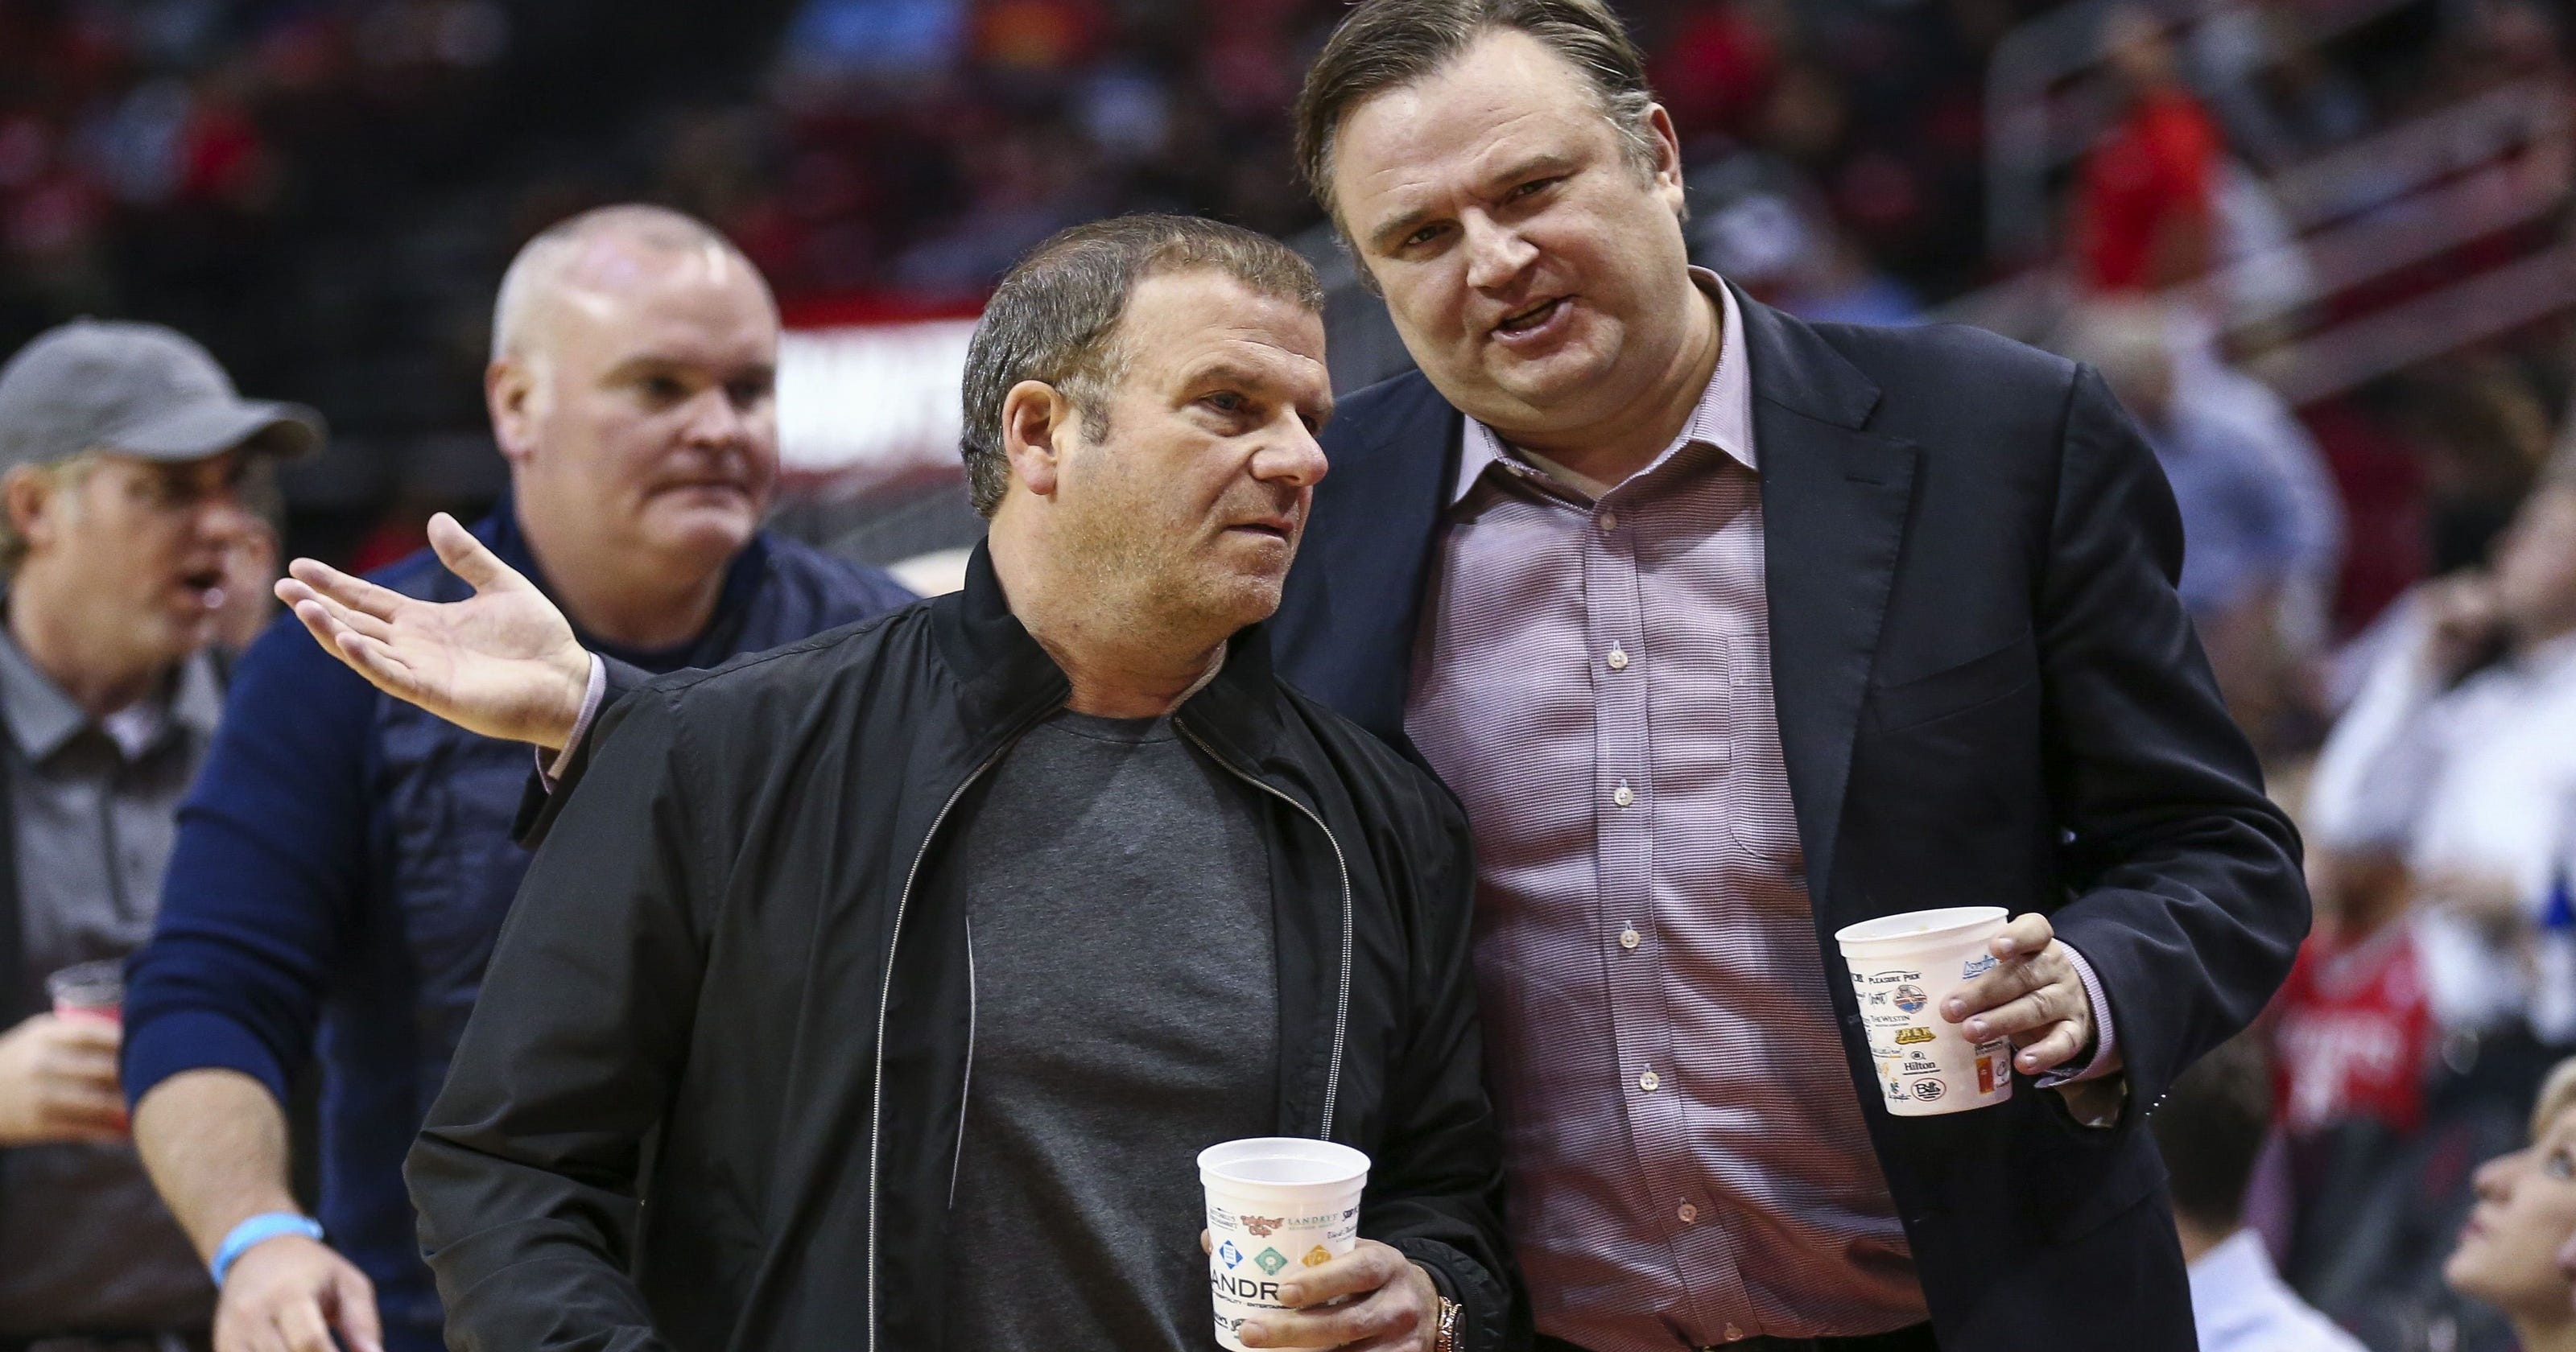 f247fa995 Rockets owner Tilman Fertitta on chasing titles   No problem paying luxury  tax  if we can win